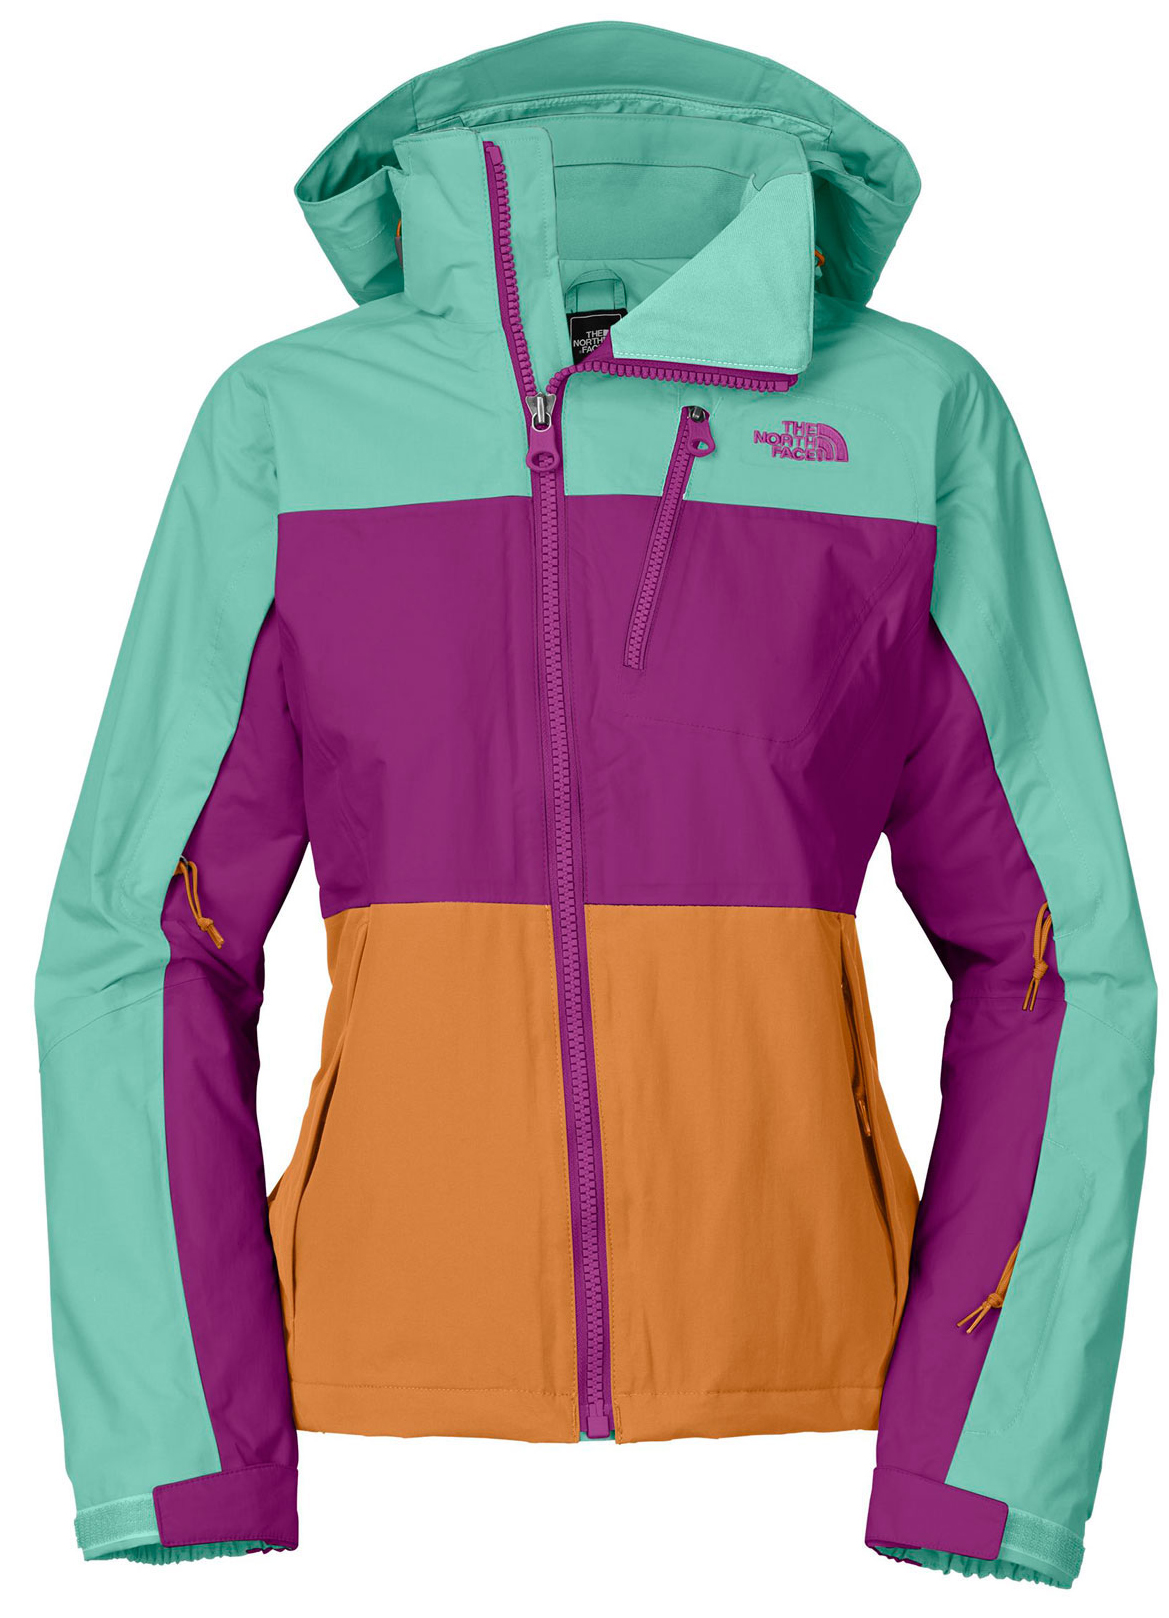 "Ski Perennially a skier's favorite, the waterproof, breathable, insulated Kizamm blends functional details such as thermal-mapped Heatseeker insulation, fully taped seams and an adjustable fixed hood with bold colorblocking that's sure to stand out on the mountain. Key Features of The North Face Kizamm Ski Jacket: Avg Weight: 950 g (33.51 oz) Center back: 25.5"" Fabric: shell: HyVent 2L plain weave Lining: taffeta Insulation: 100 g/80 g Heatseeker Adjustable fixed hood Pit-zip vents Napoleon zip pocket Handwarmer zip pockets Wrist accessory pocket with goggle cloth Internal media security pocket Snap-back powder skirt with elastic gripper Internal goggle pocket Adjustable hem system Hook-and-loop adjustable cuffs - $153.95"